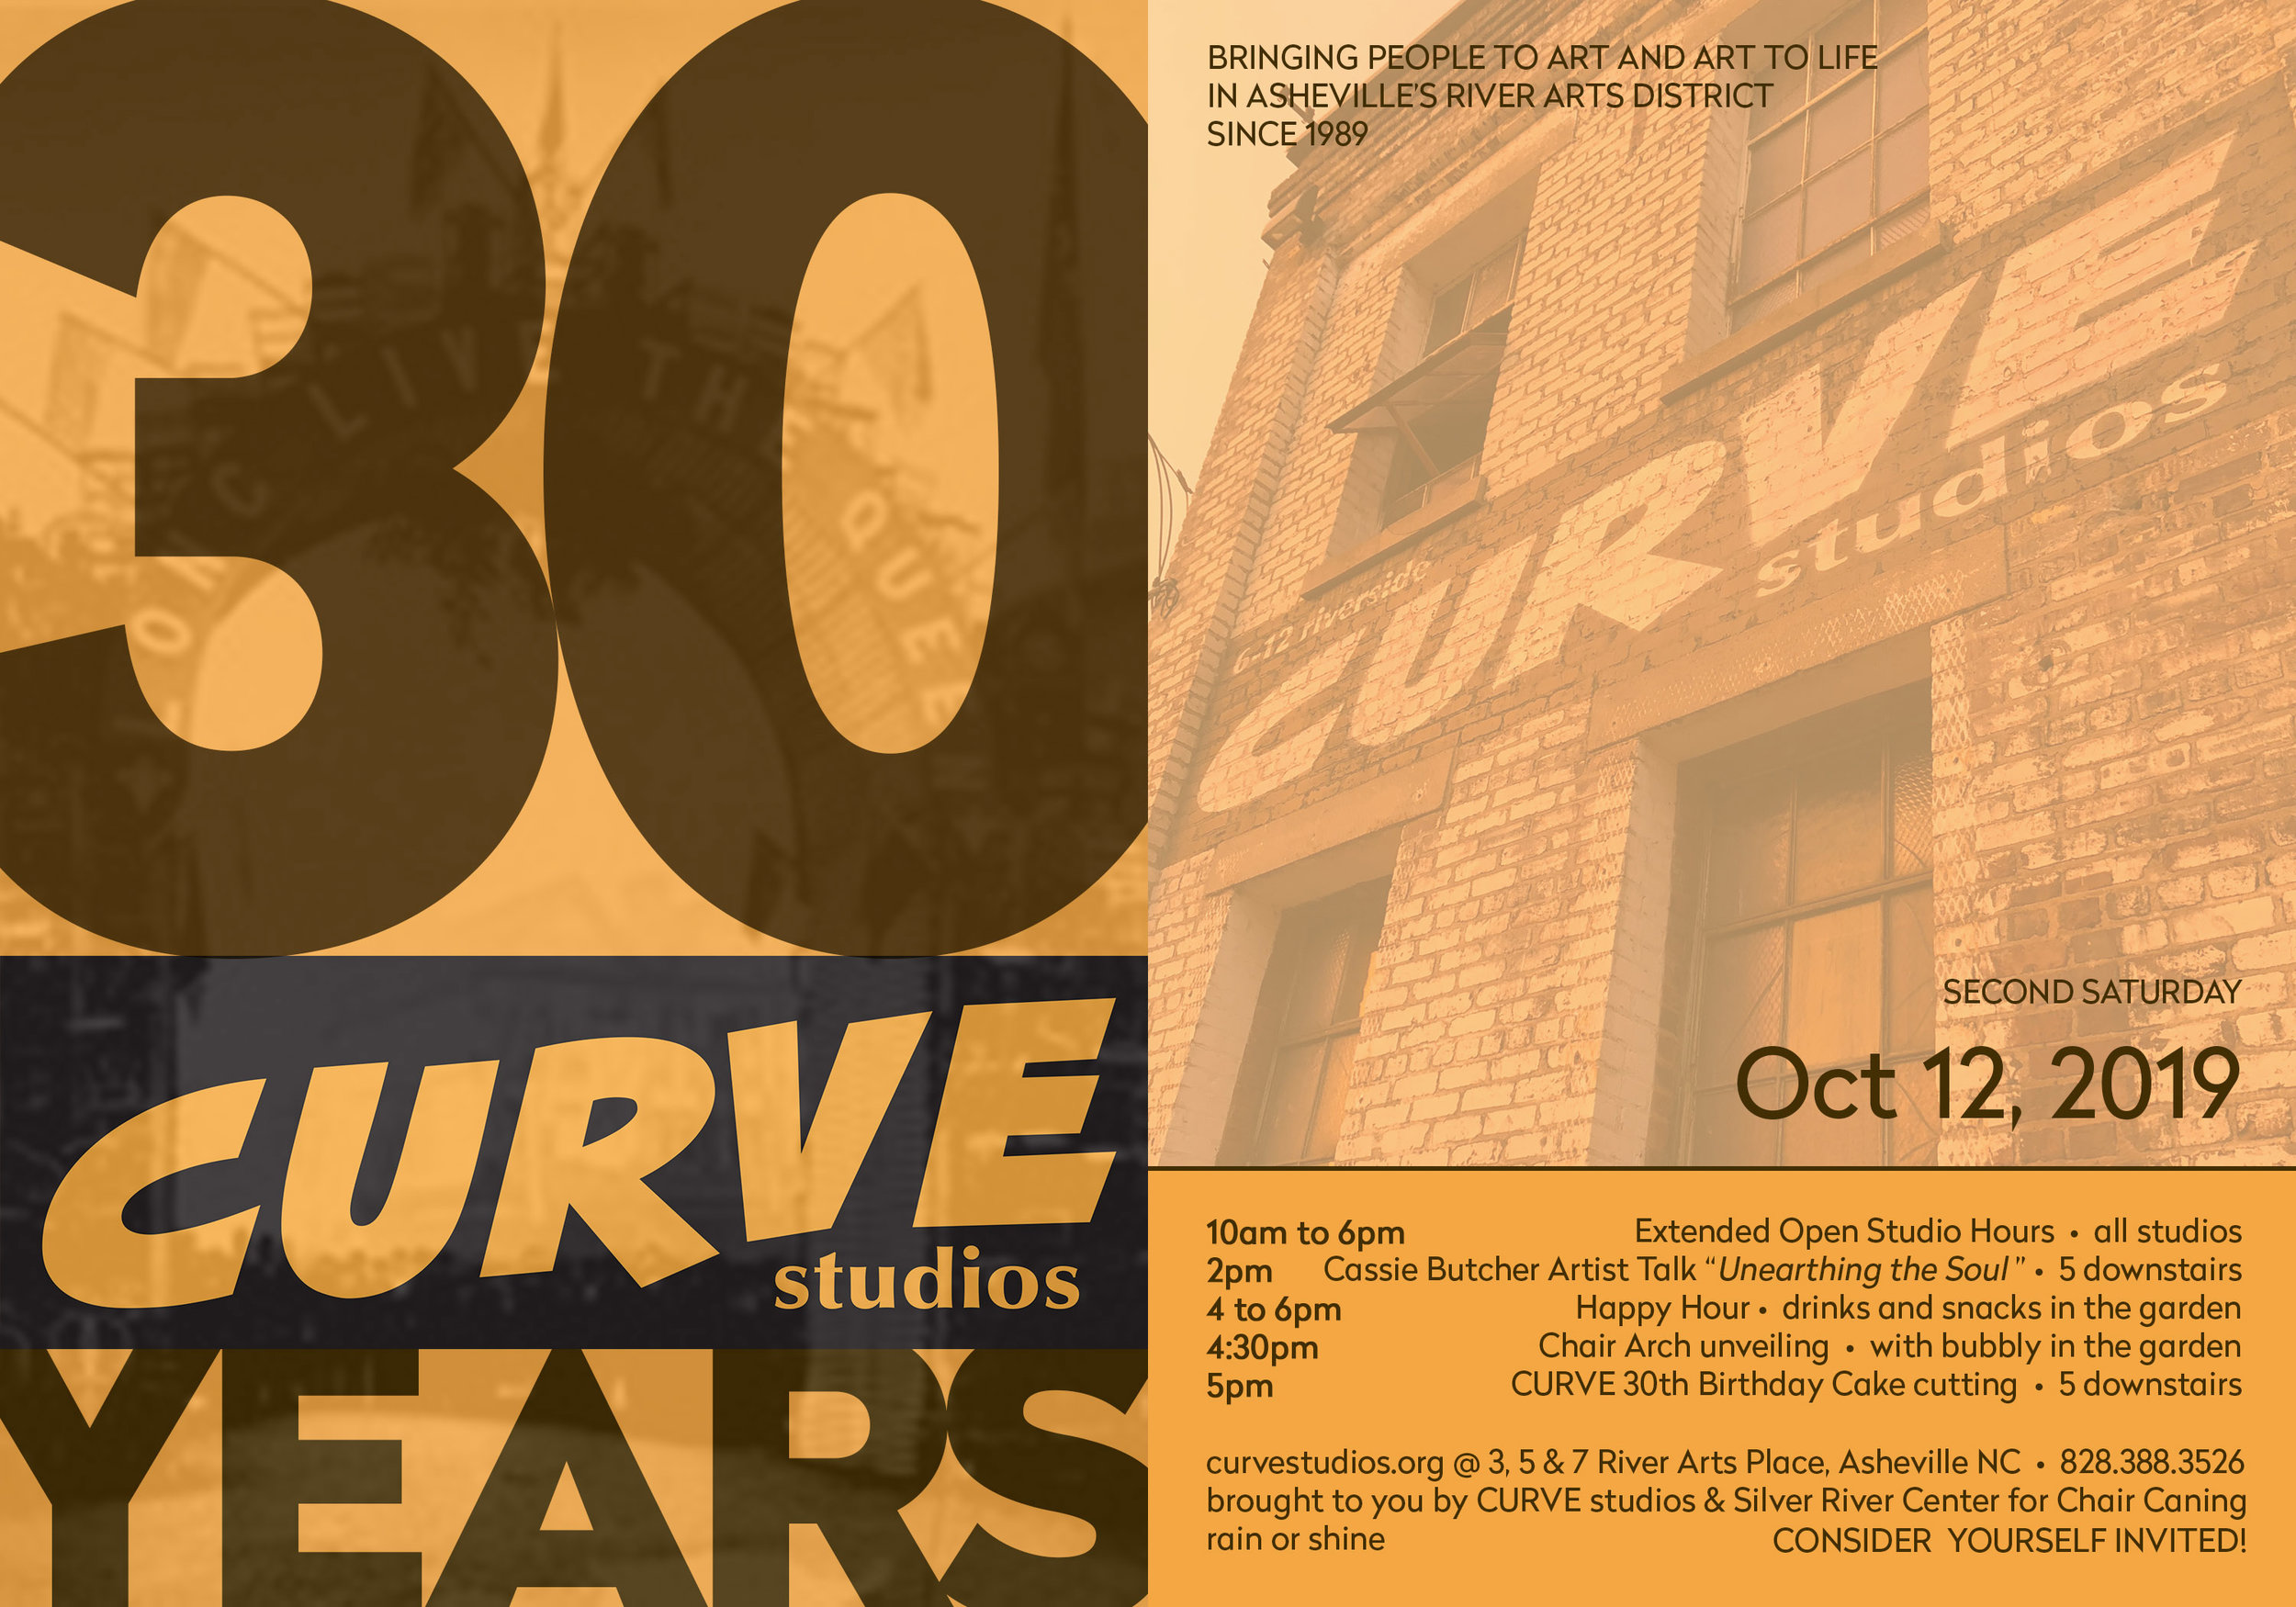 CURVE 30 Party- You're invited!